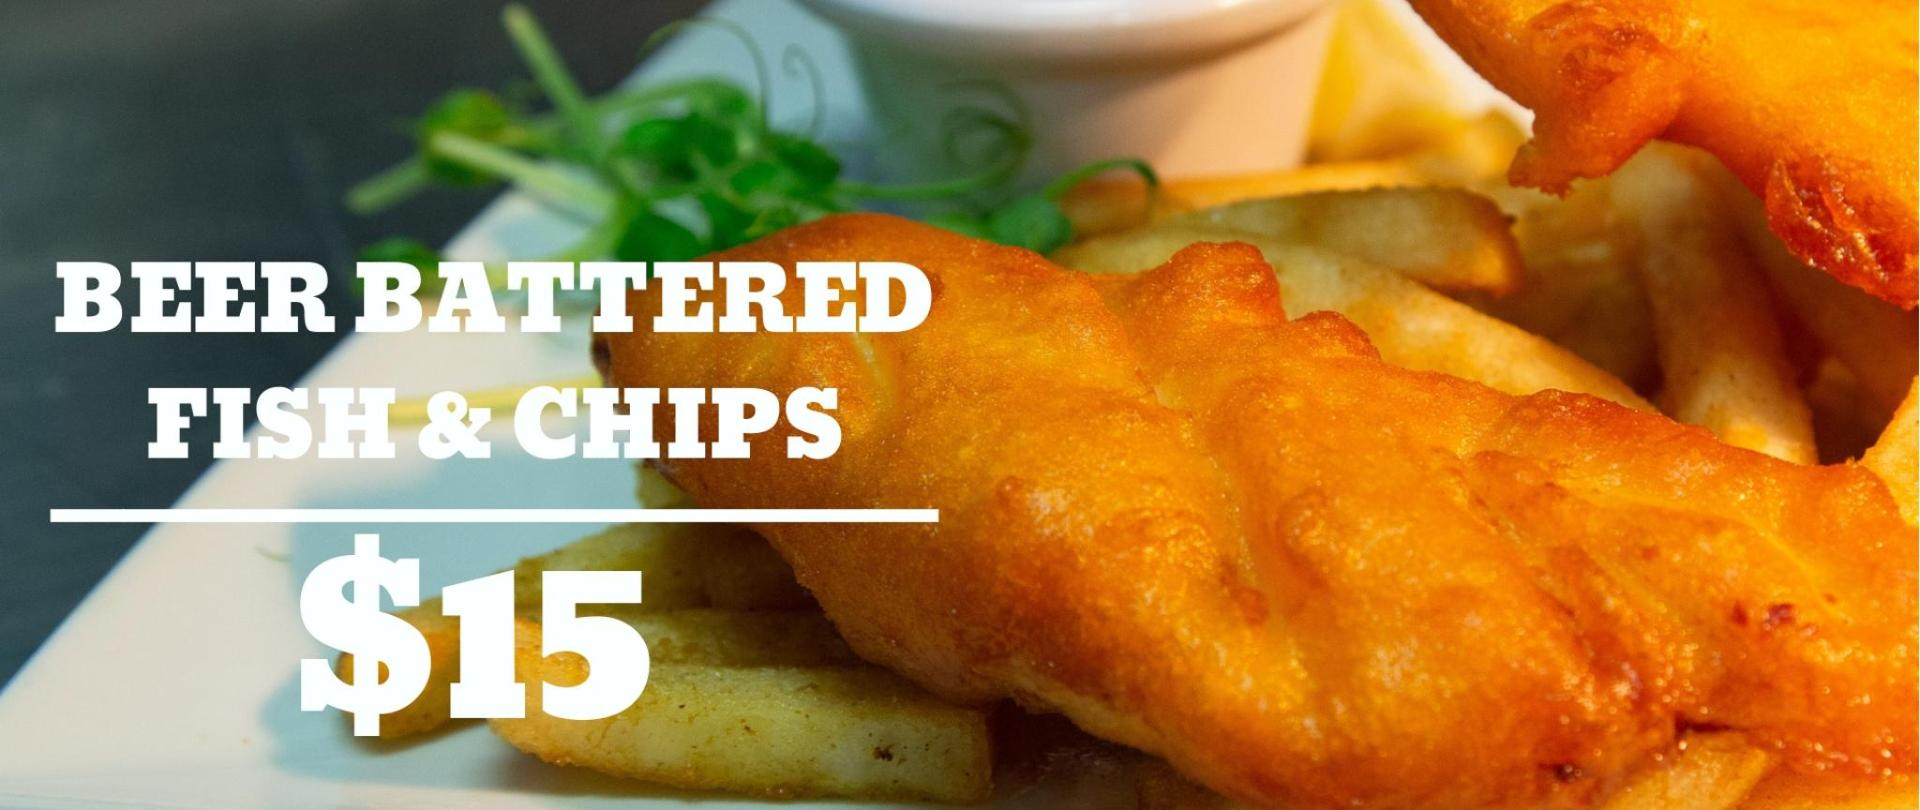 2. Beer Battered Fish and Chips.jpg